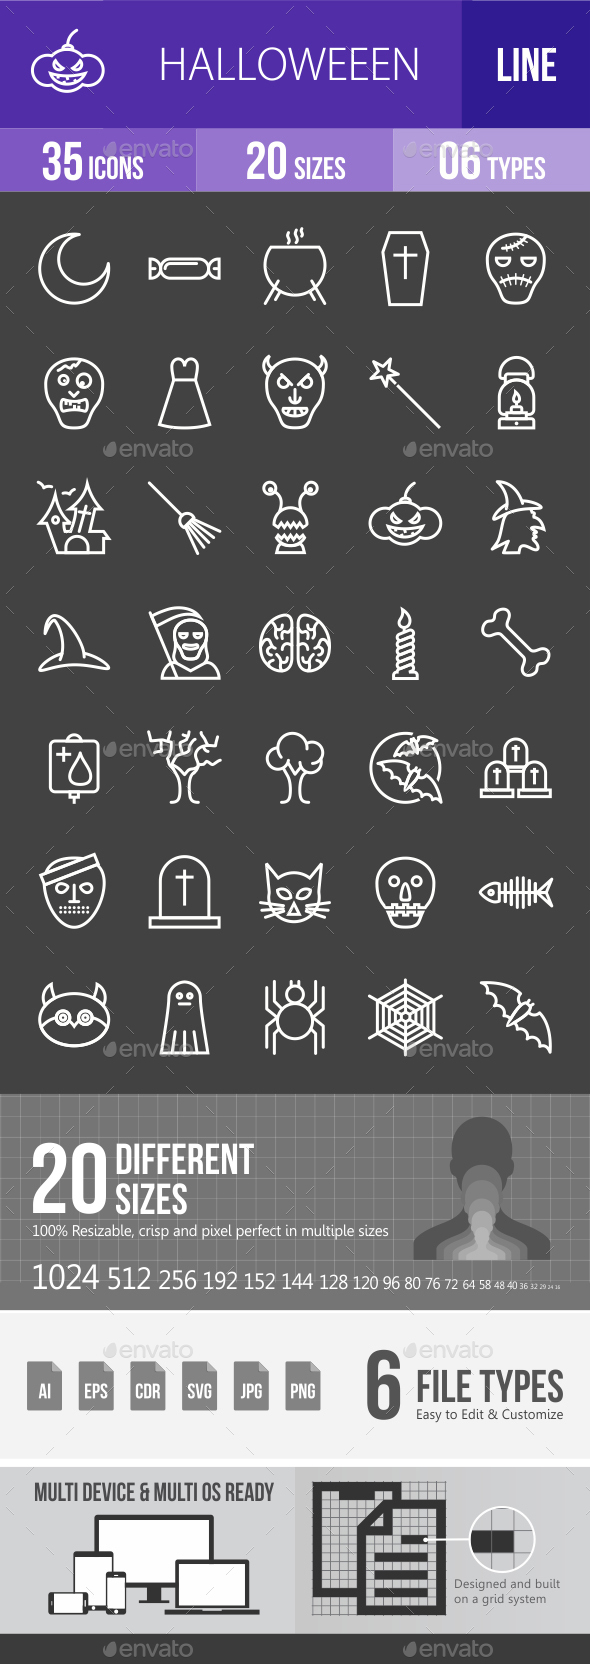 Halloween Line Inverted Icons - Icons